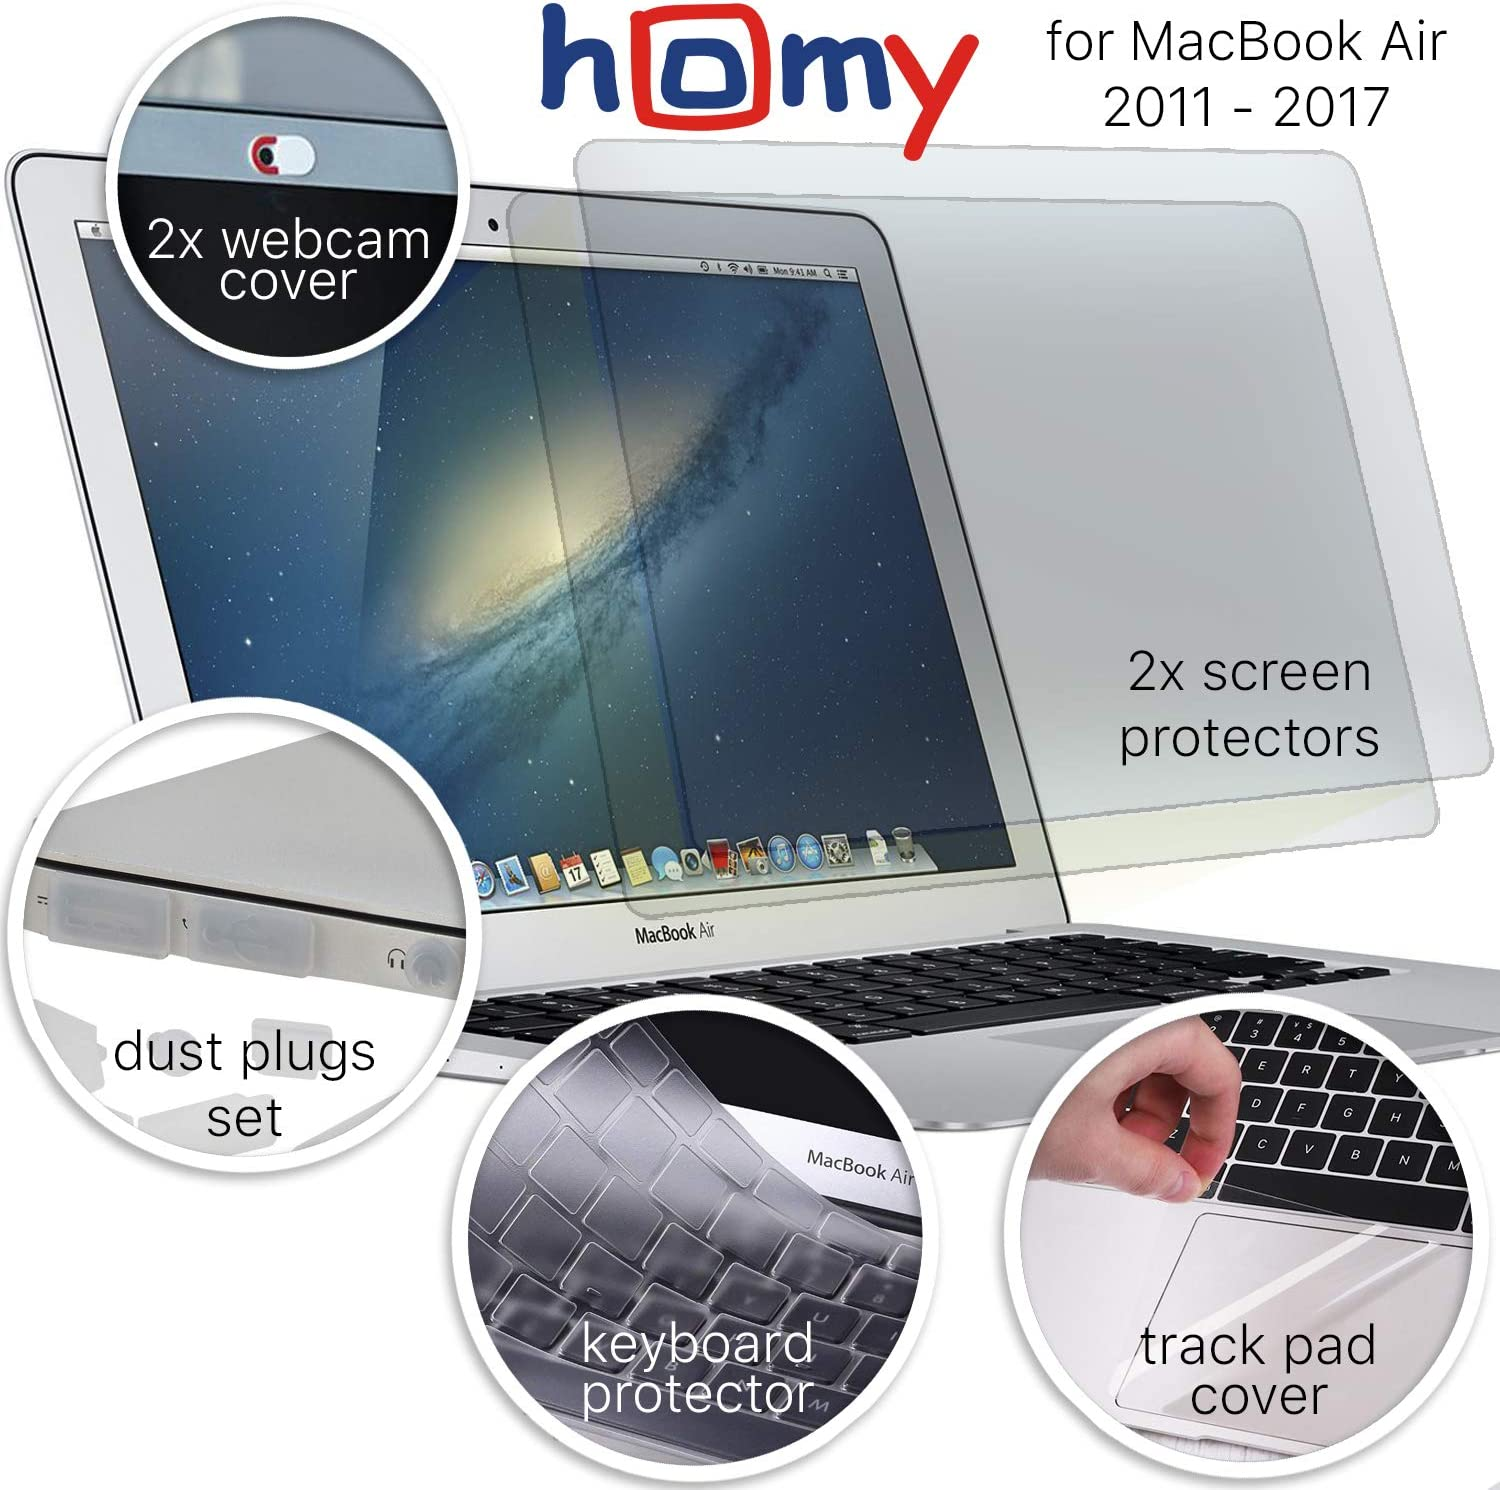 Homy Full Protection Kit for MacBook Air 13 inch 2017 or Earlier: 2X Matte Screen Protector + Keyboard Skin Touch ID + 2X Anti-Spy Camera Slide Cover + Dust Plugs + Trackpad Cover, A1369 / A1466